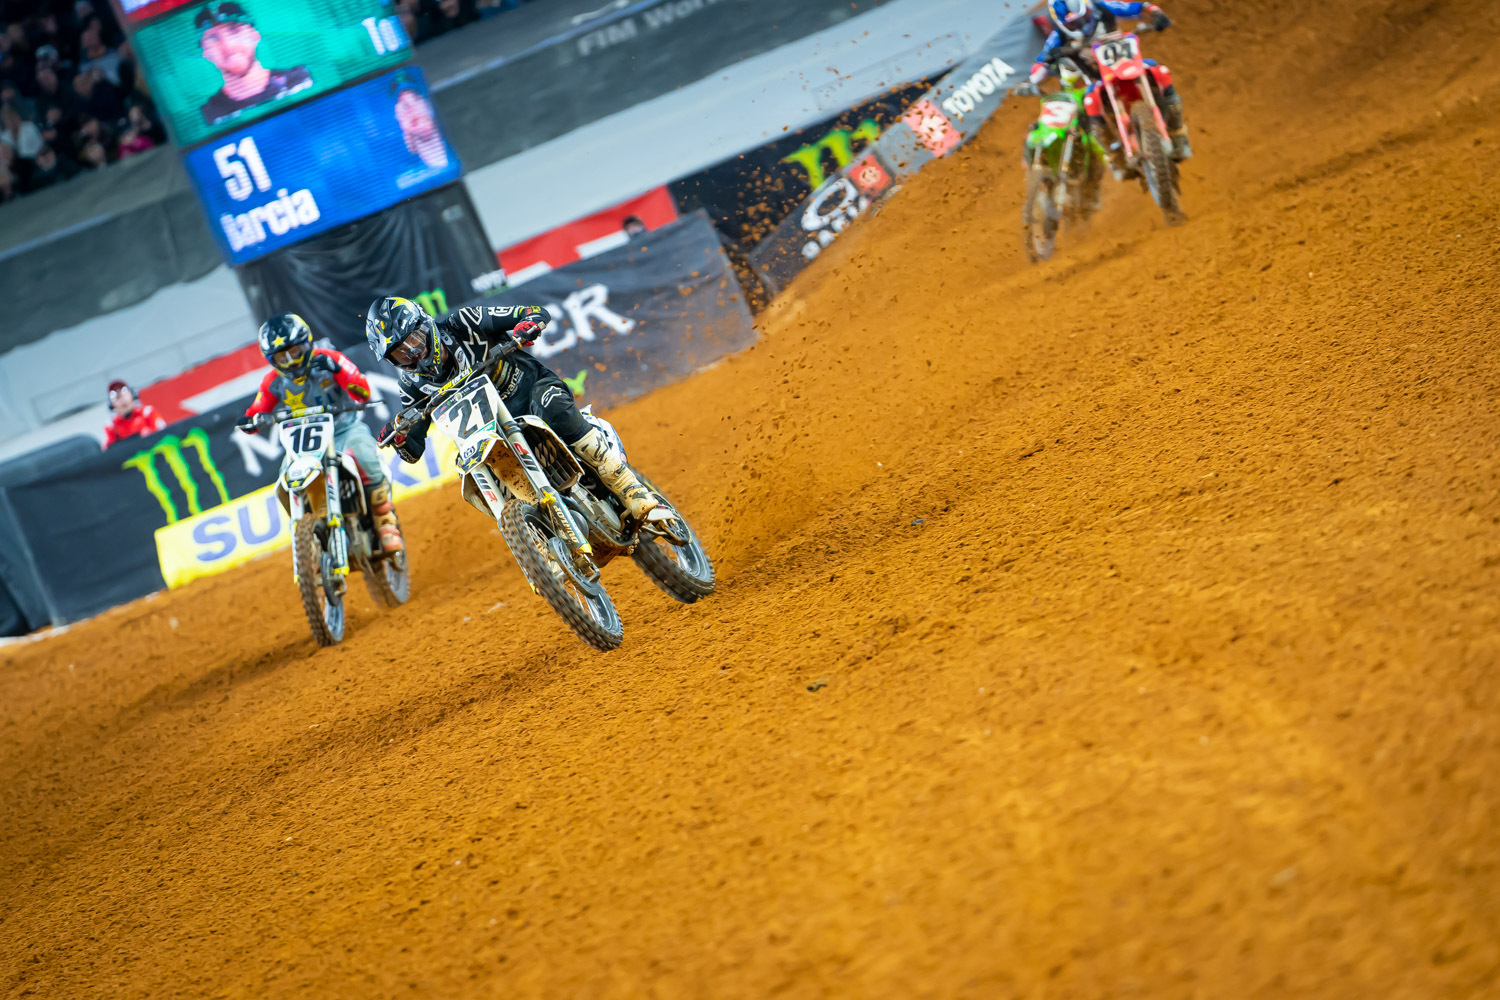 2020-ARLINGTON-SUPERCROSS_KICKSTART_0093